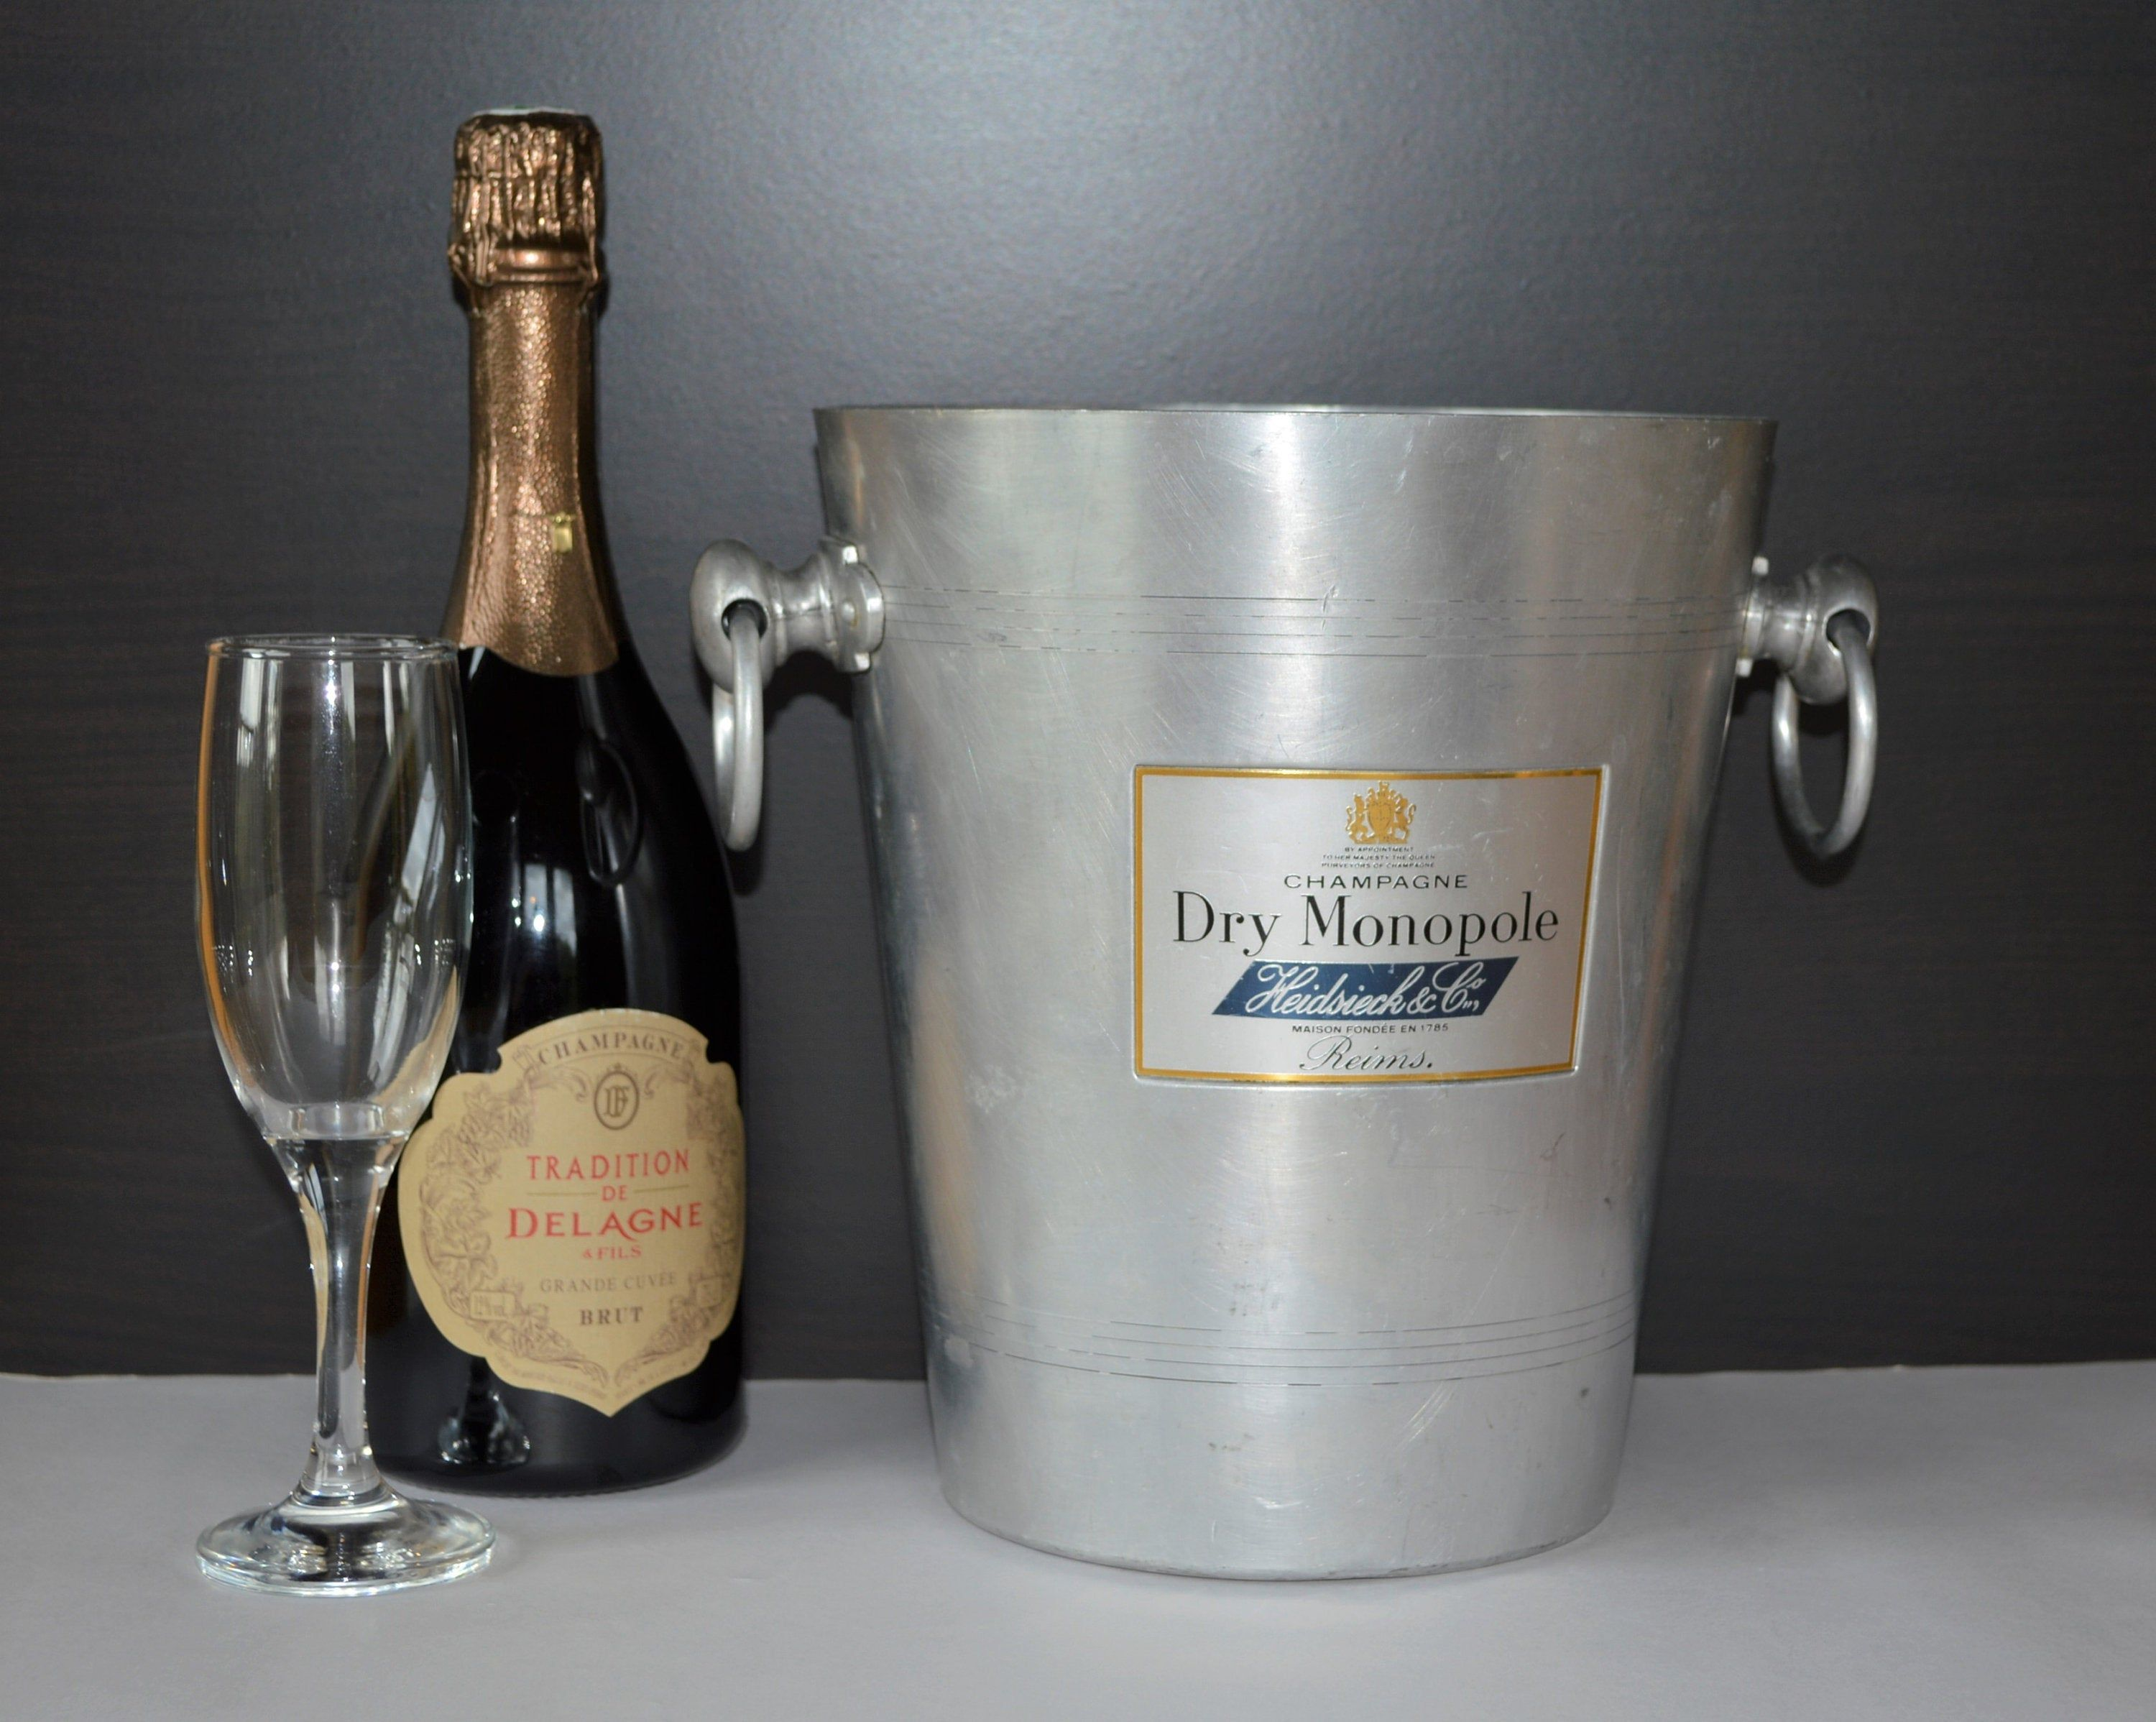 French Vintage Tall Champagne Bucket Magnum Heidsieck Dry Monopole Cooler Prosecco Wine Chiller Shabby Chic Barware Retro Dining Prosecco Wine Wine Chiller Champagne Buckets